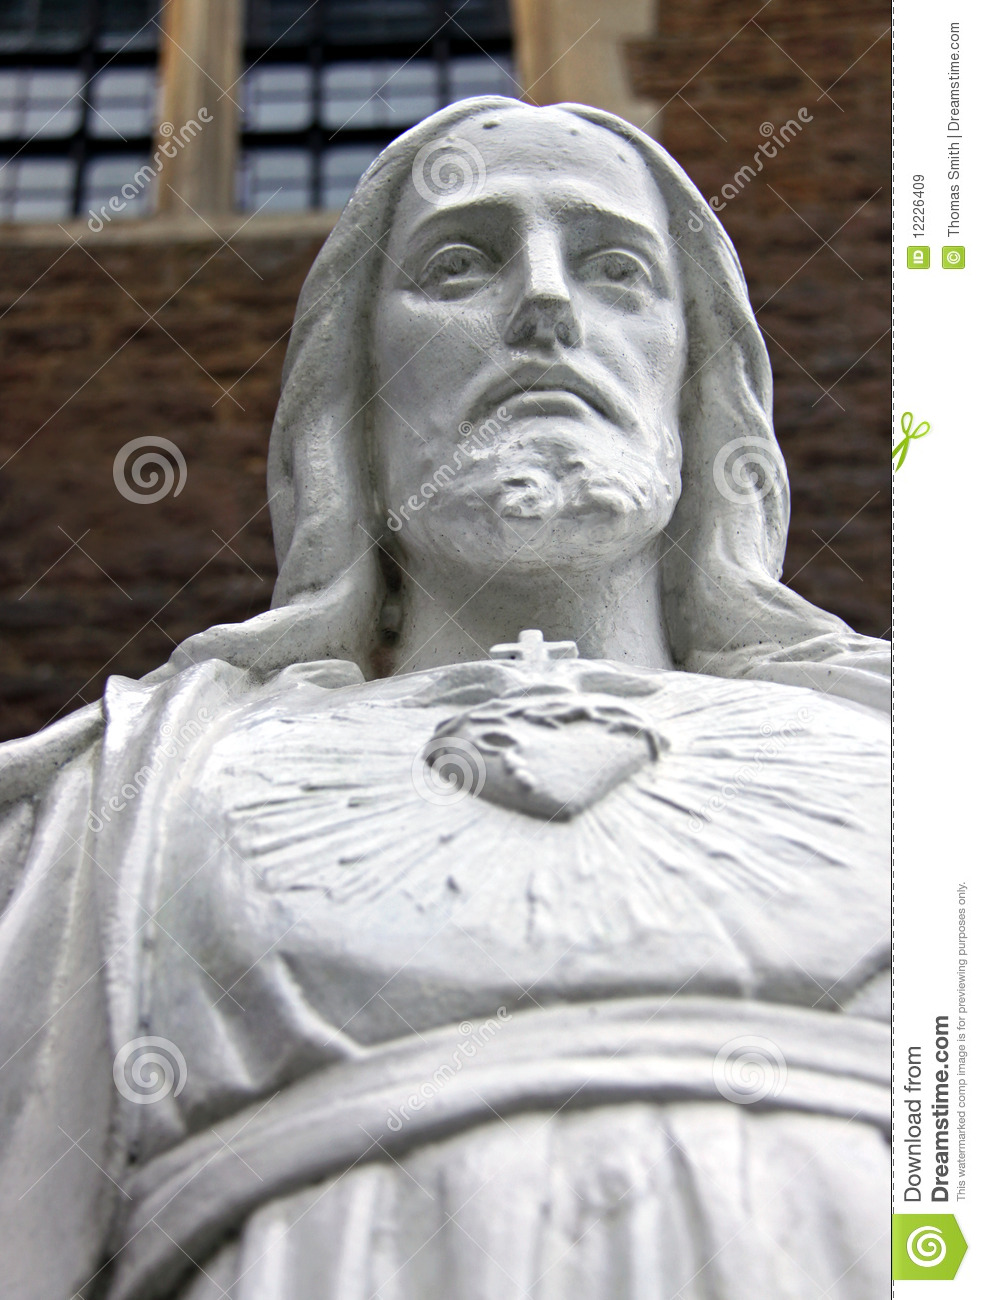 Torso / Bust Of A Religious Jesus Statue Stock Image ...